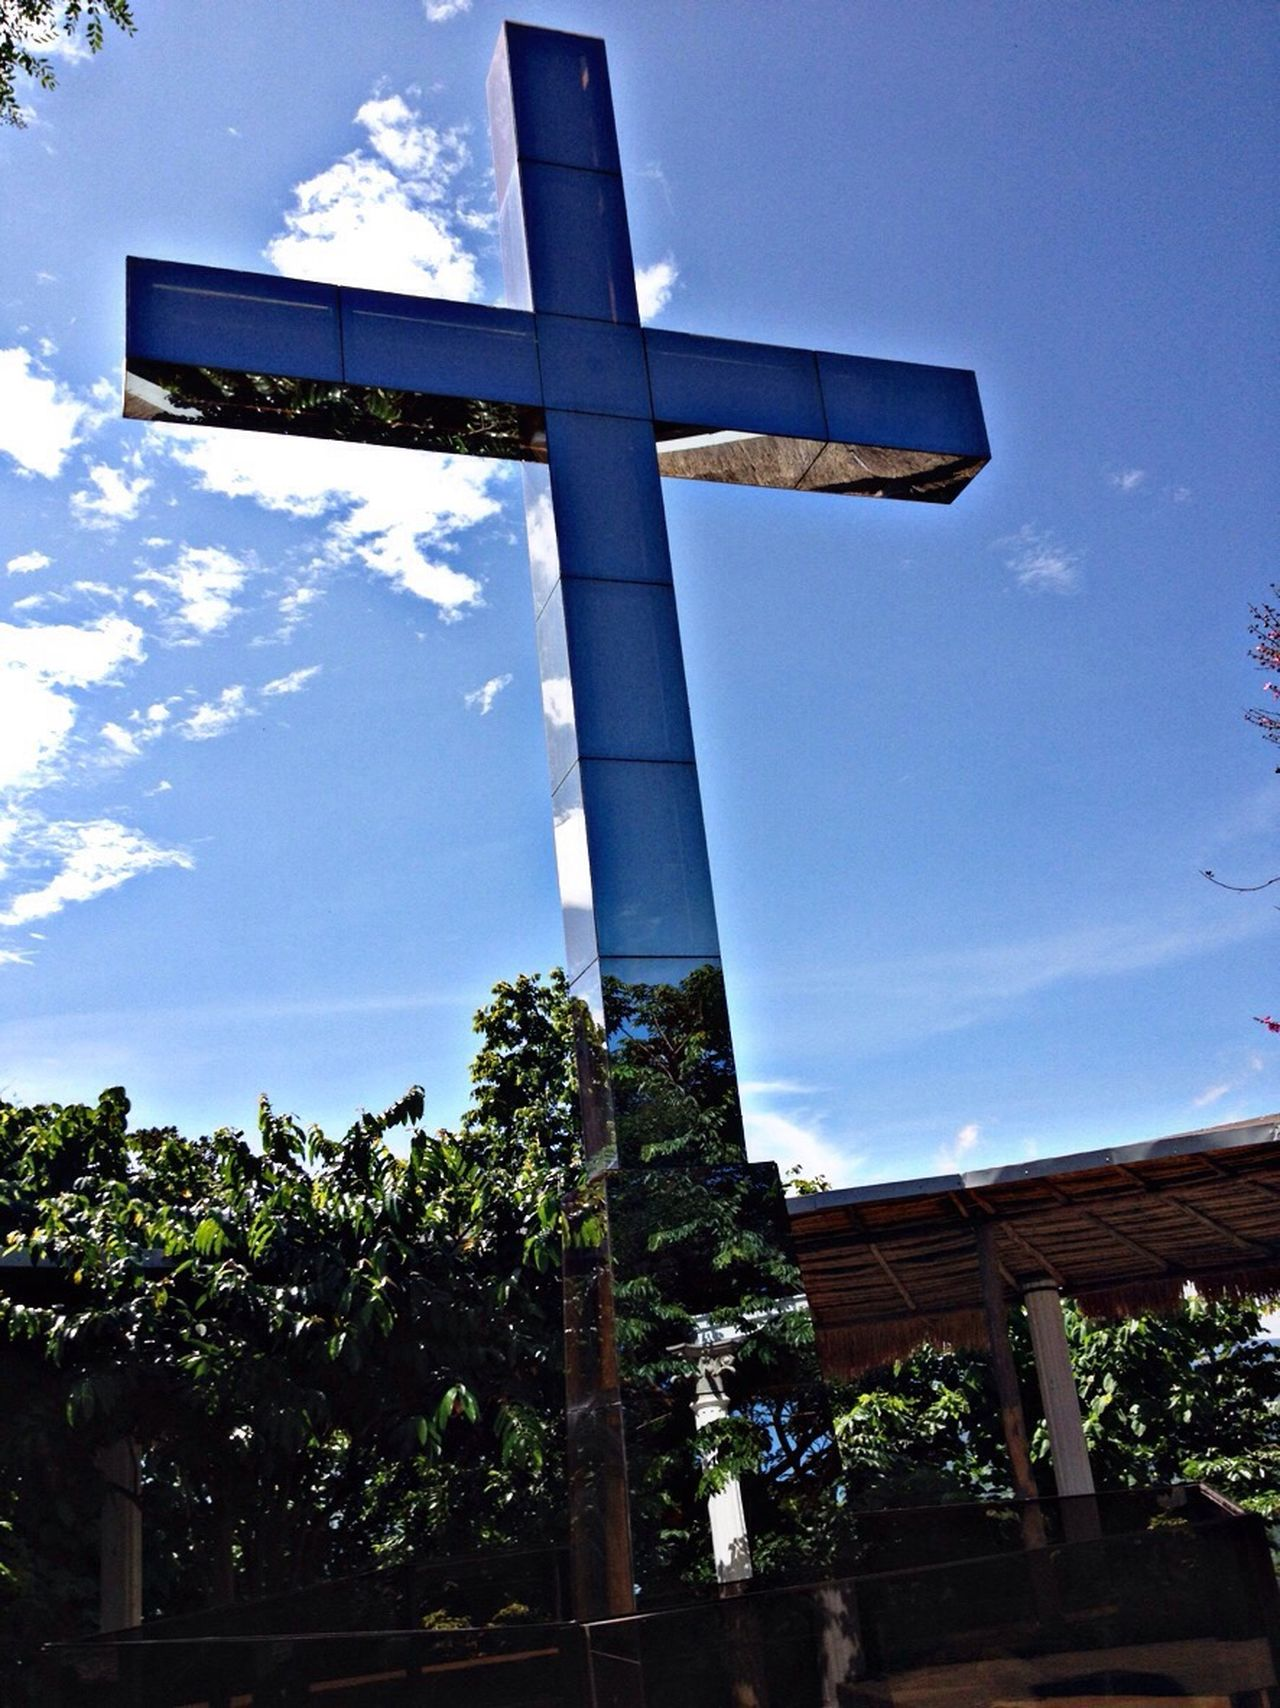 holy cross 1000steps Minalungaonationalpark Nuevaecija Philippines Check This Out IPhoneography Iphoneonly PhonePhotography Iosphotography Itsmorefuninthephilippines Achievement